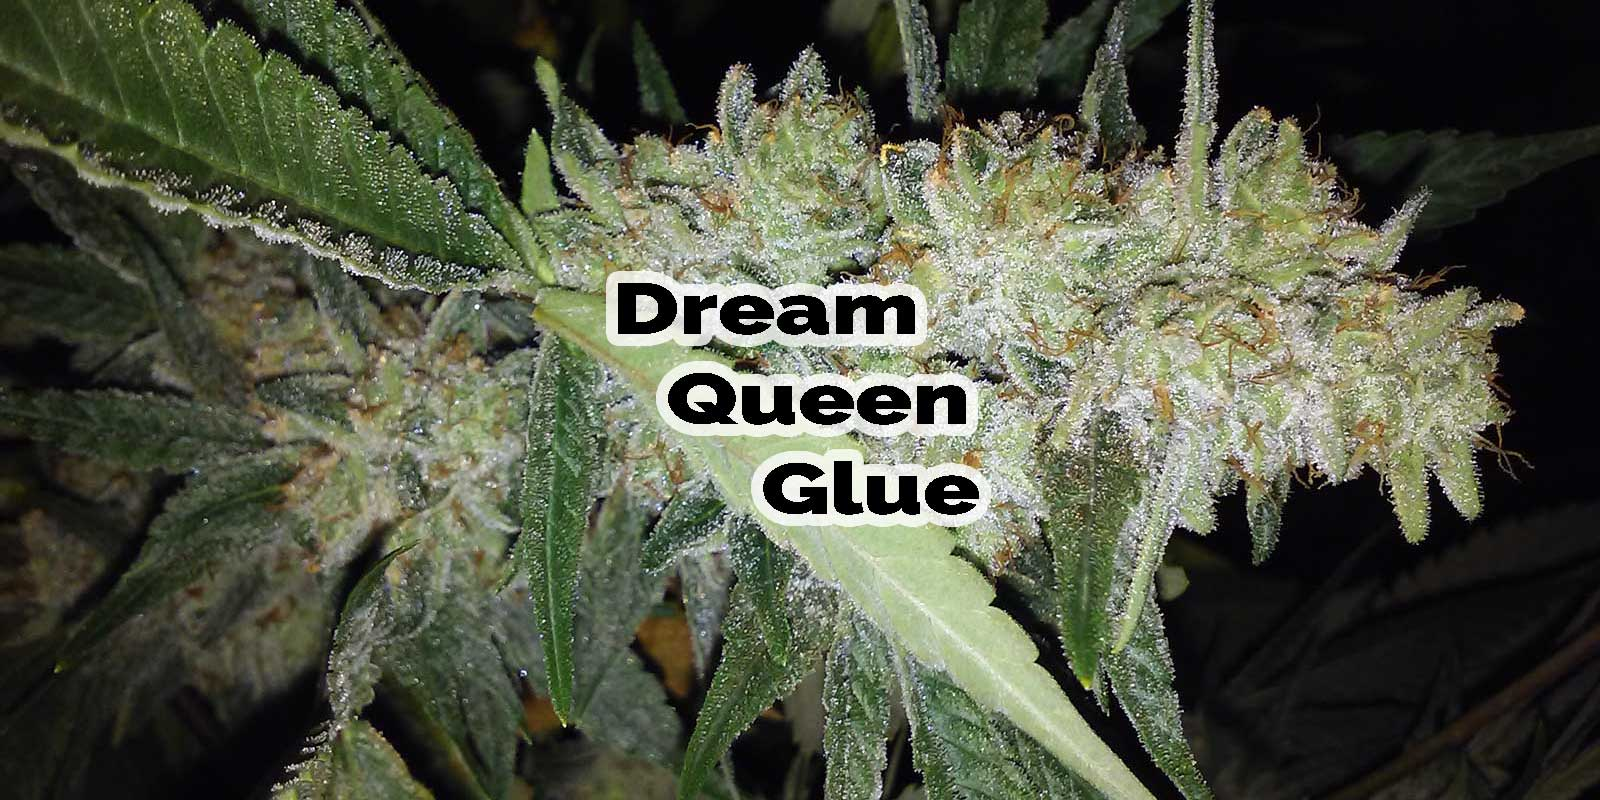 Dream Queen Glue Grown Indoors